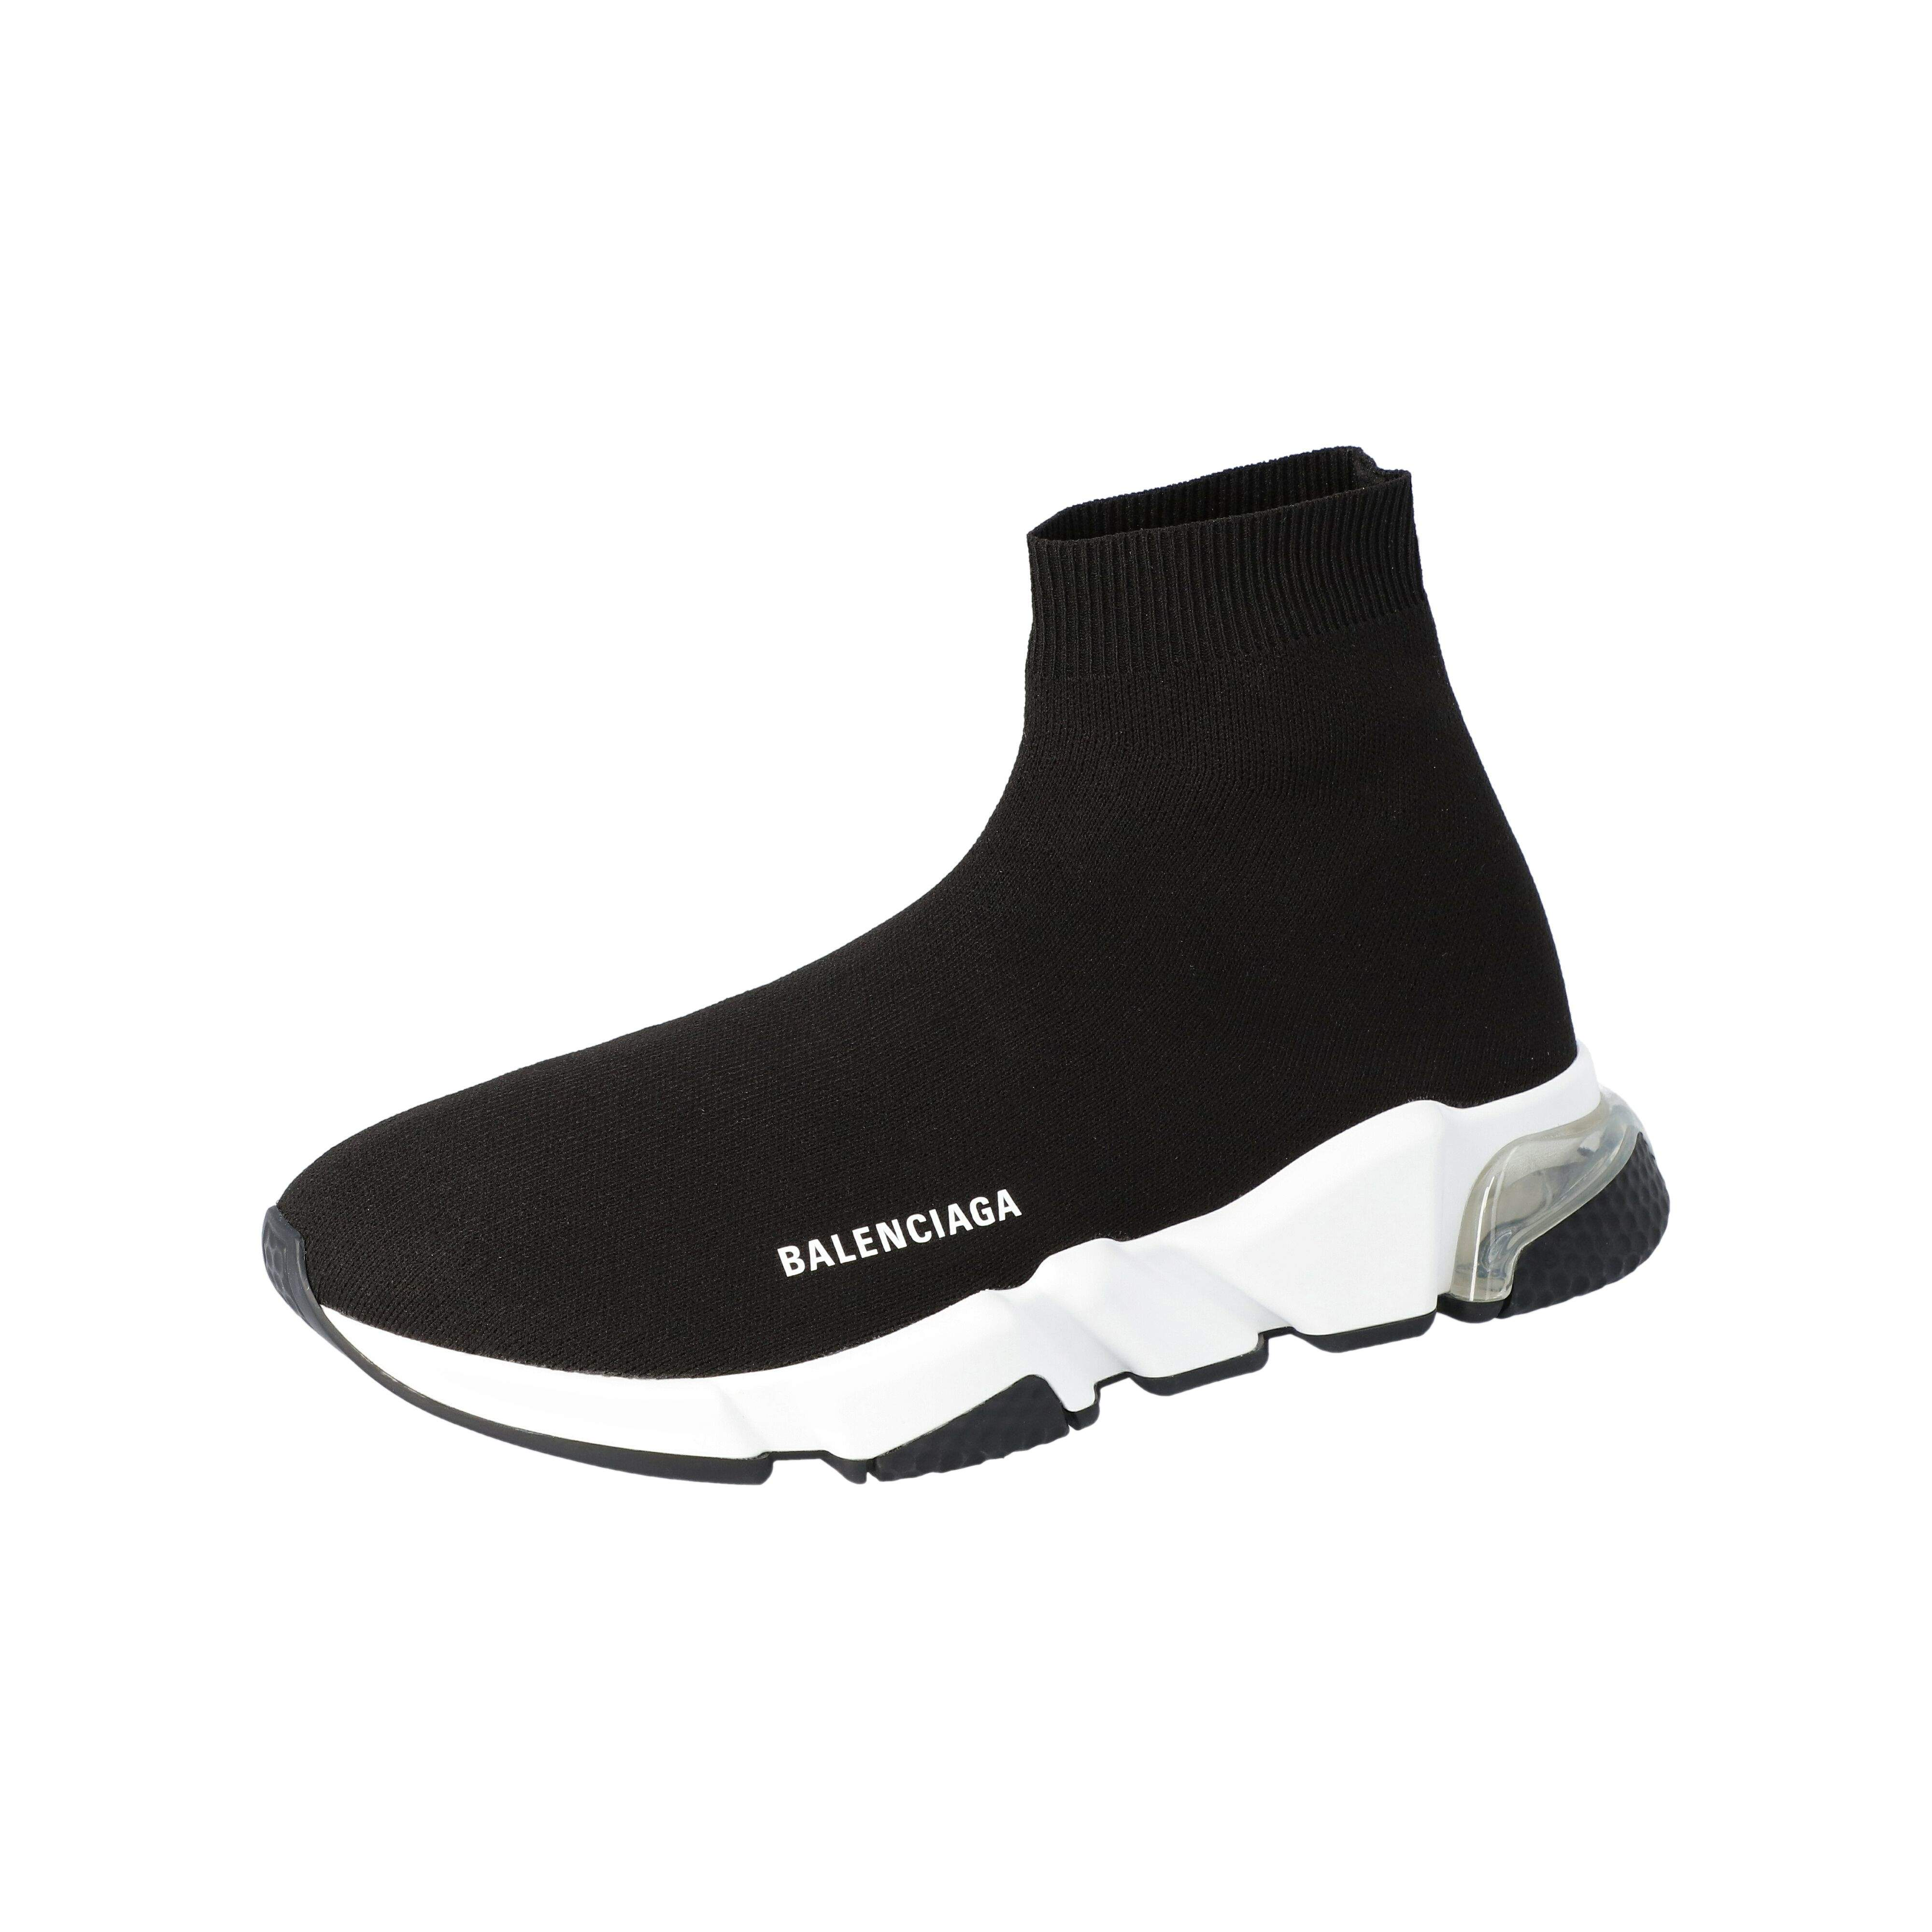 Balenciaga Black Knit Speed Clear Sole Sneakers Size 44